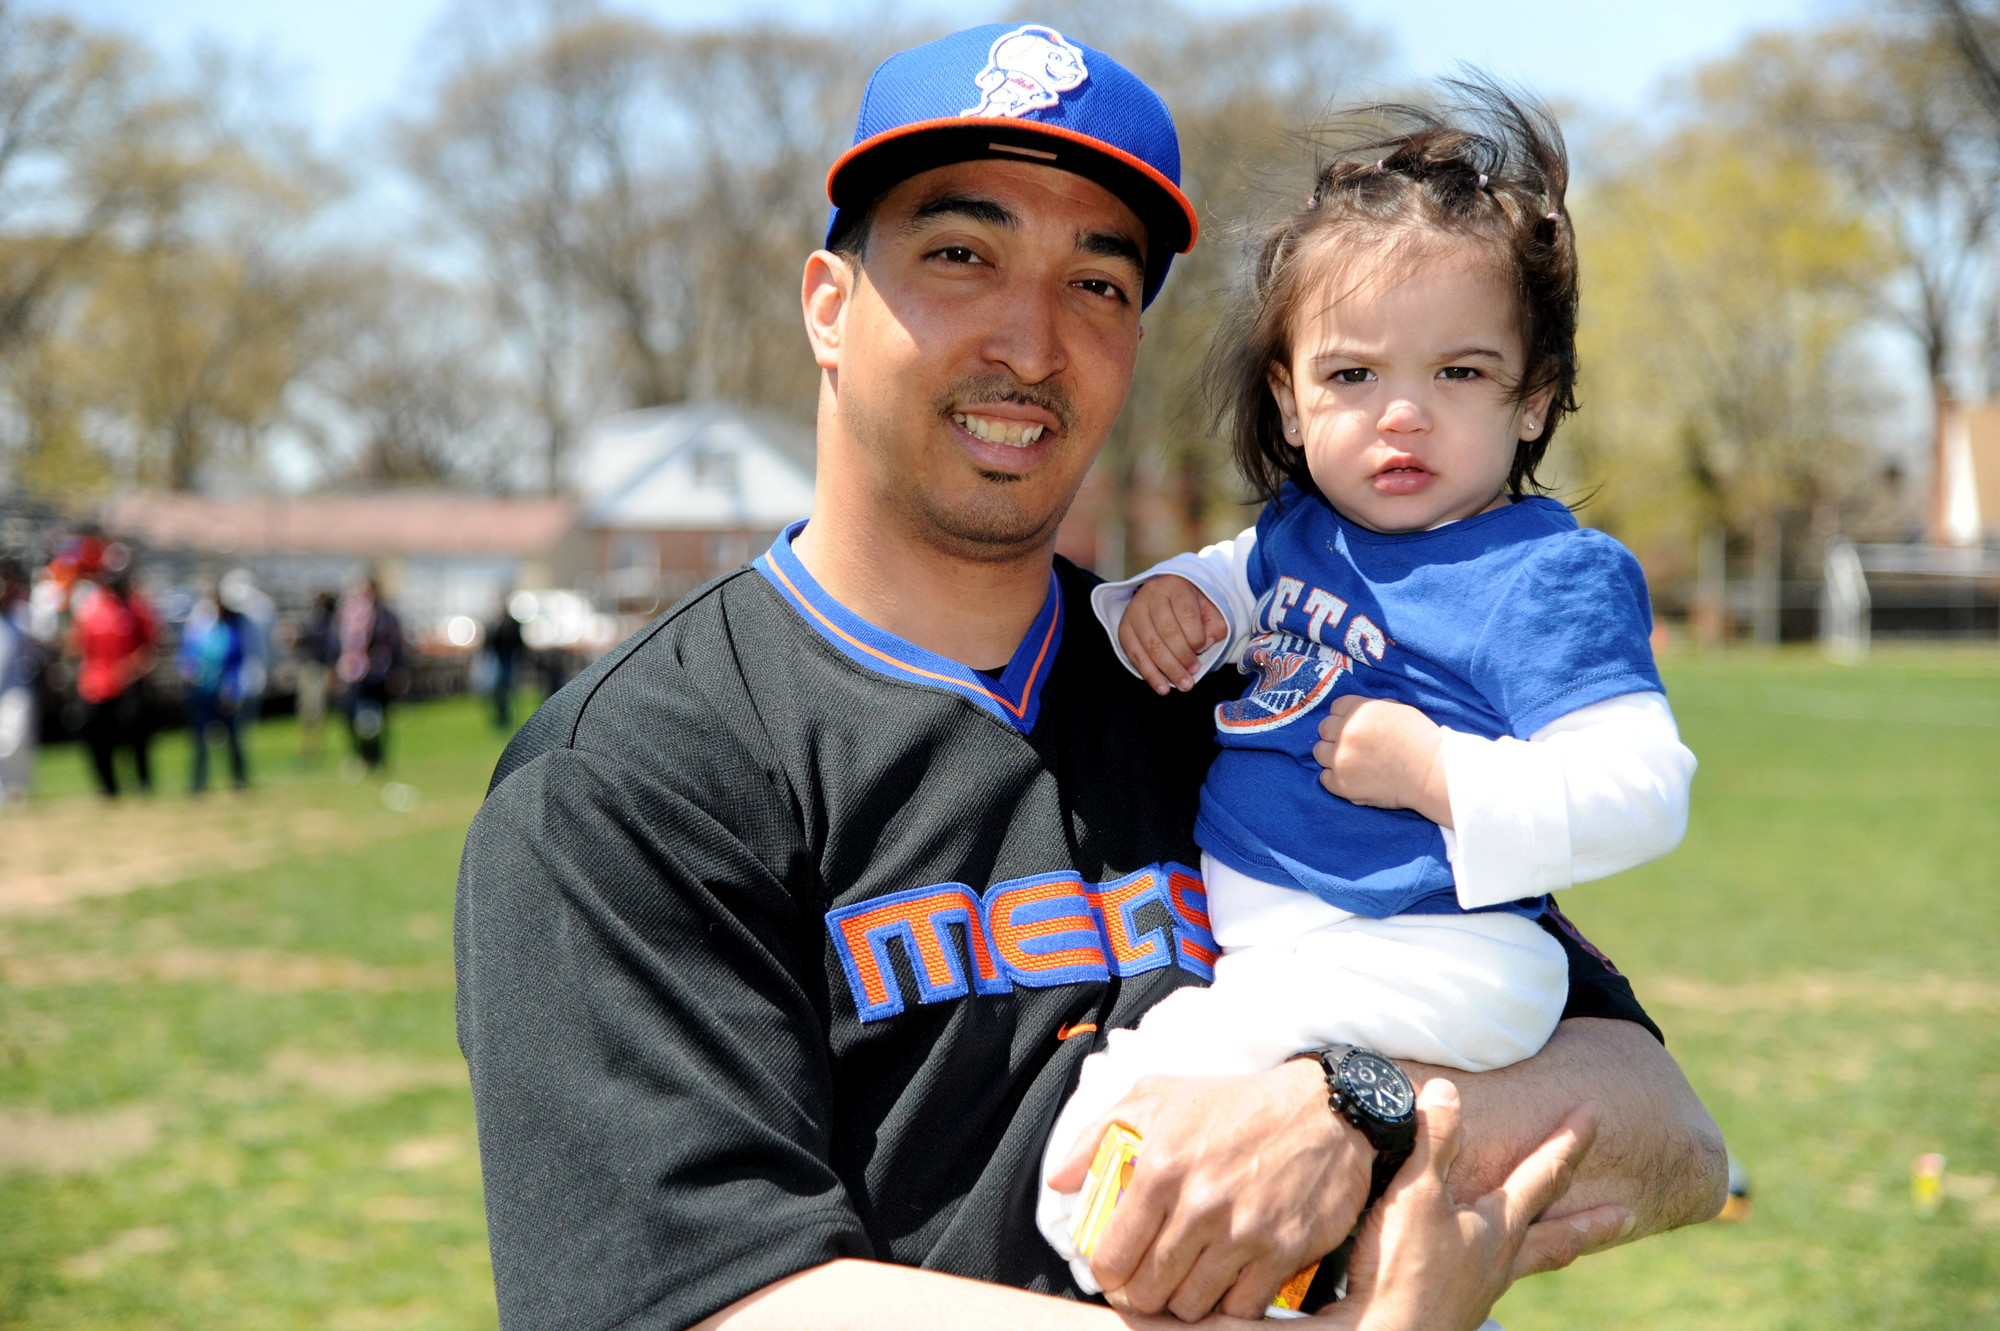 Baseball fans Johnny Torres and his daughter Sydney Page Torres, 2, enjoyed the sunny day.